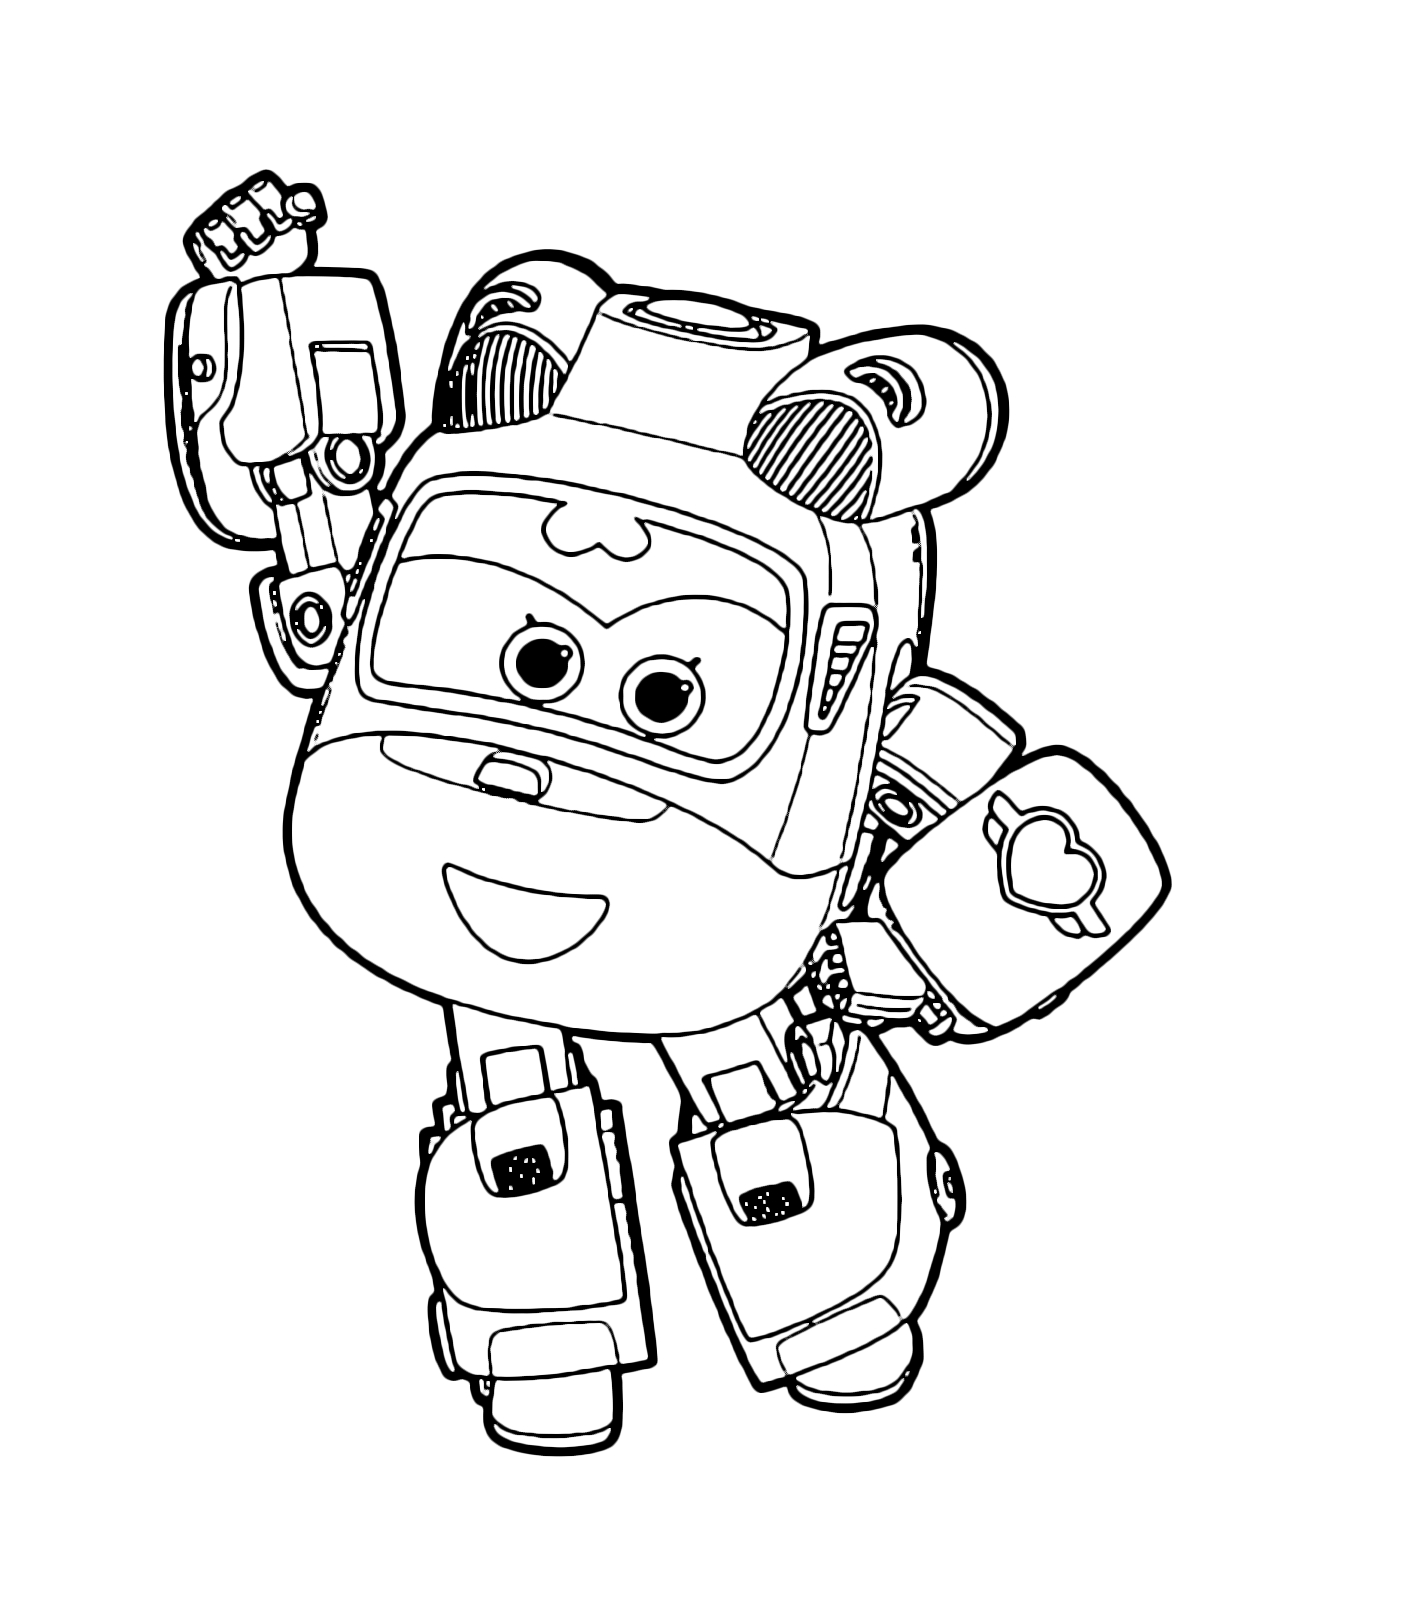 27 Super Wings Coloring Pages Images Free Coloring Pages Part 3